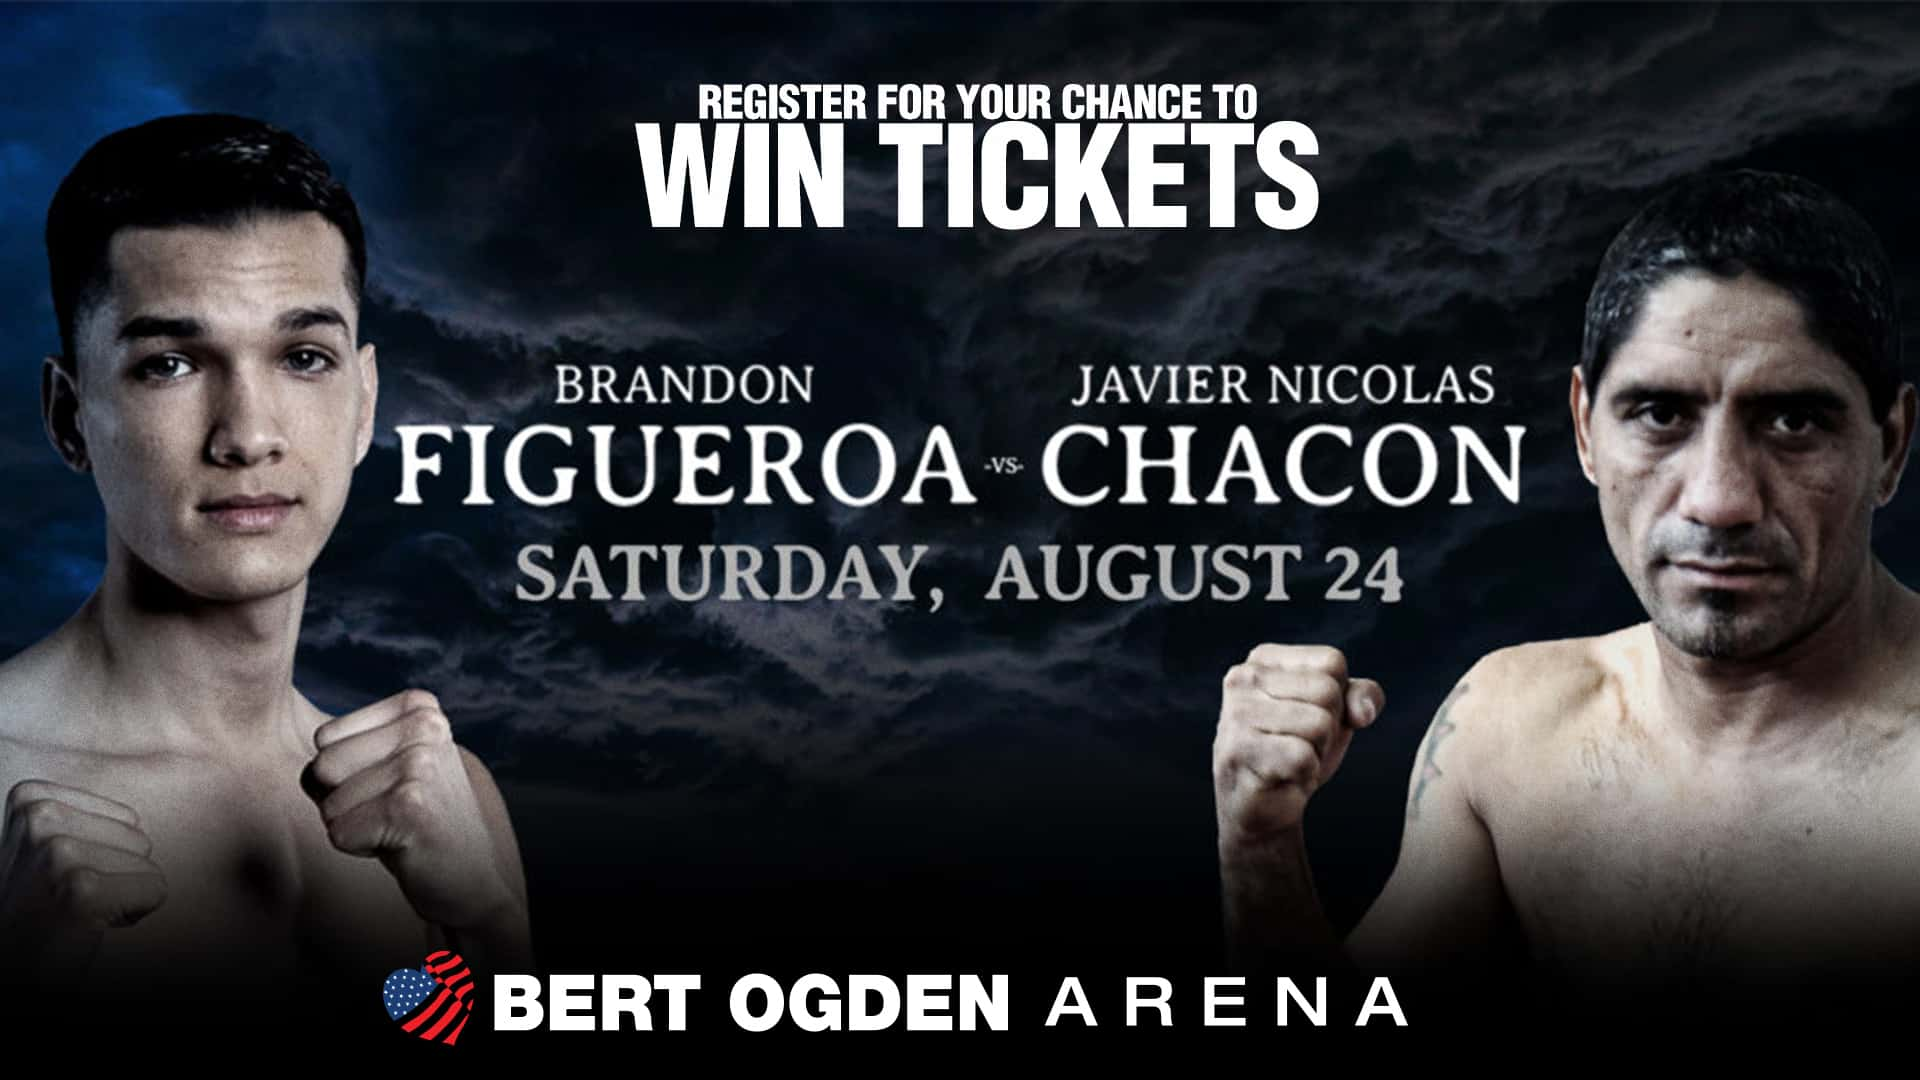 Register for your chance to win tickets to See Figueroa Vs. Chacon